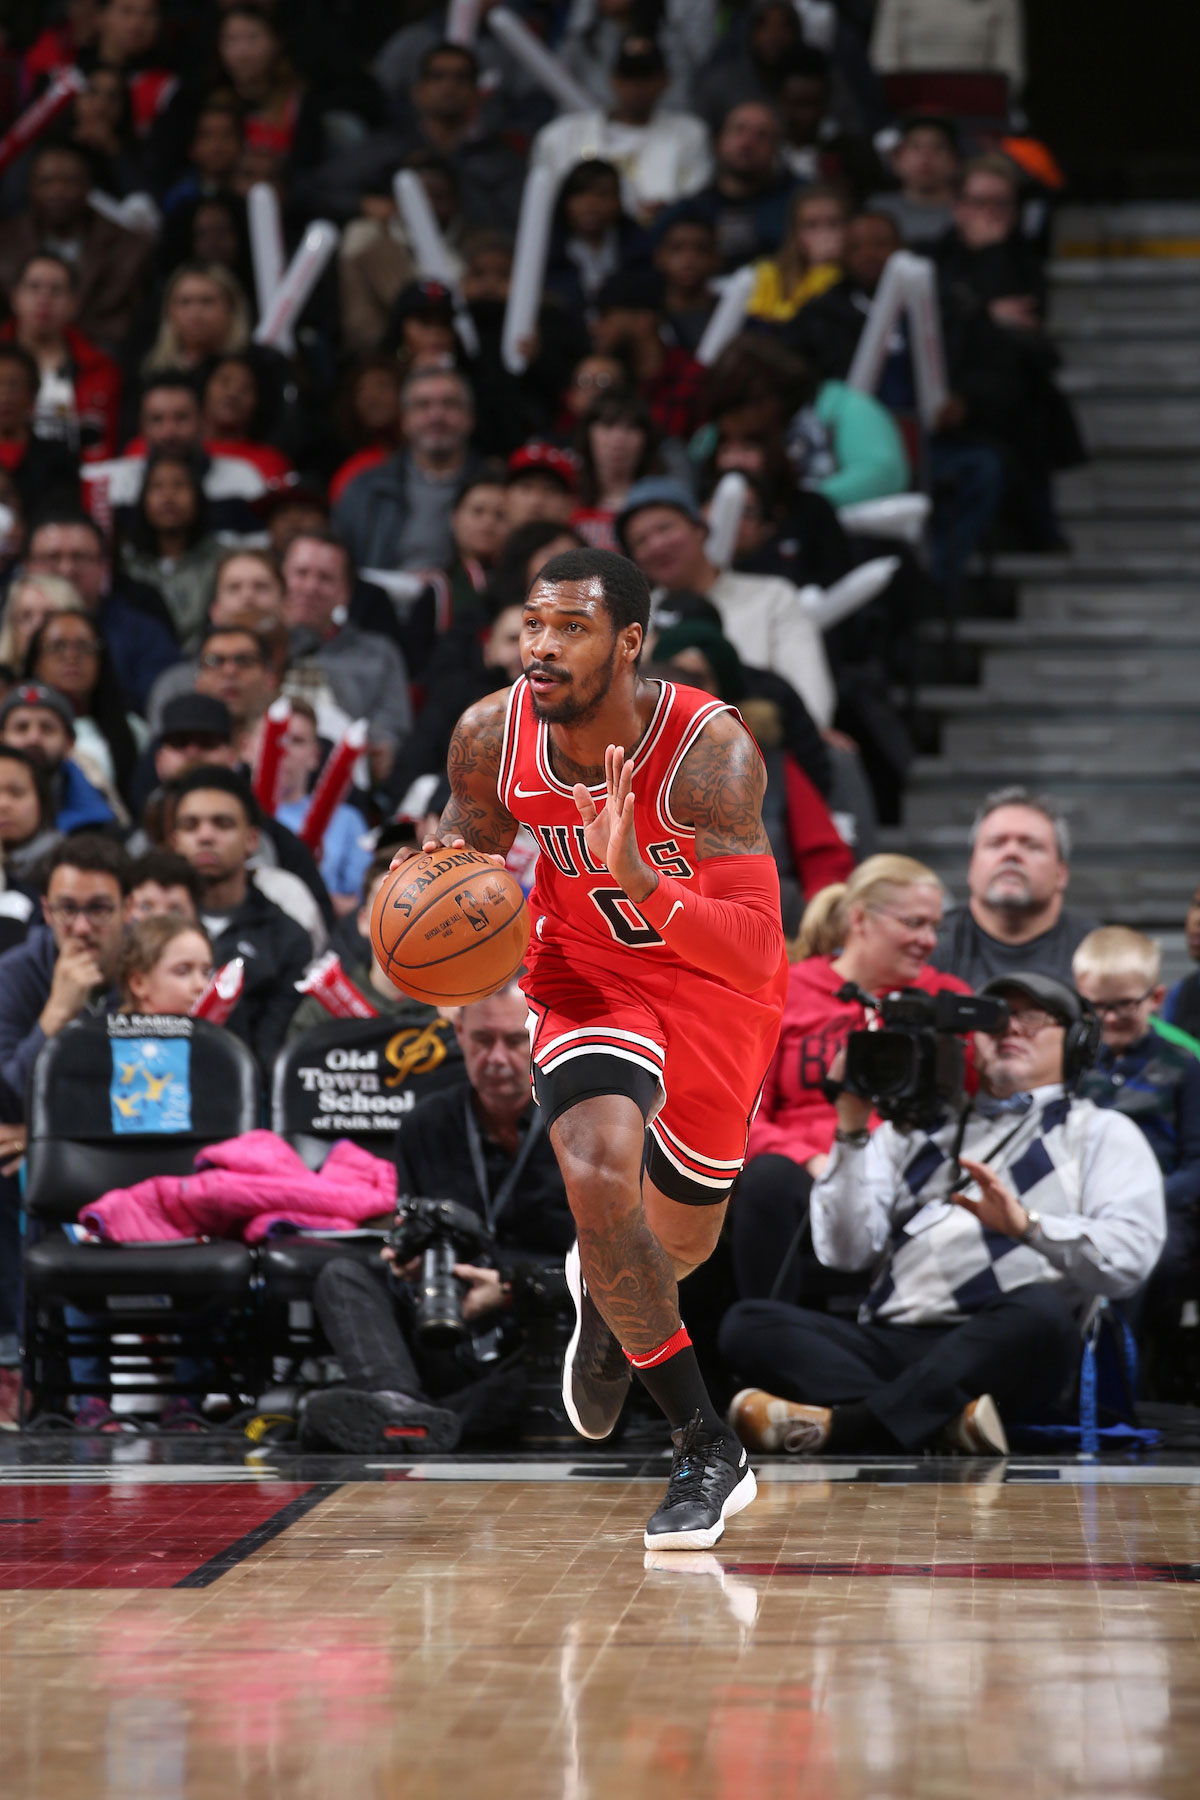 Sean Kilpatrick #0 of the Chicago Bulls handles the ball against the Washington Wizards.